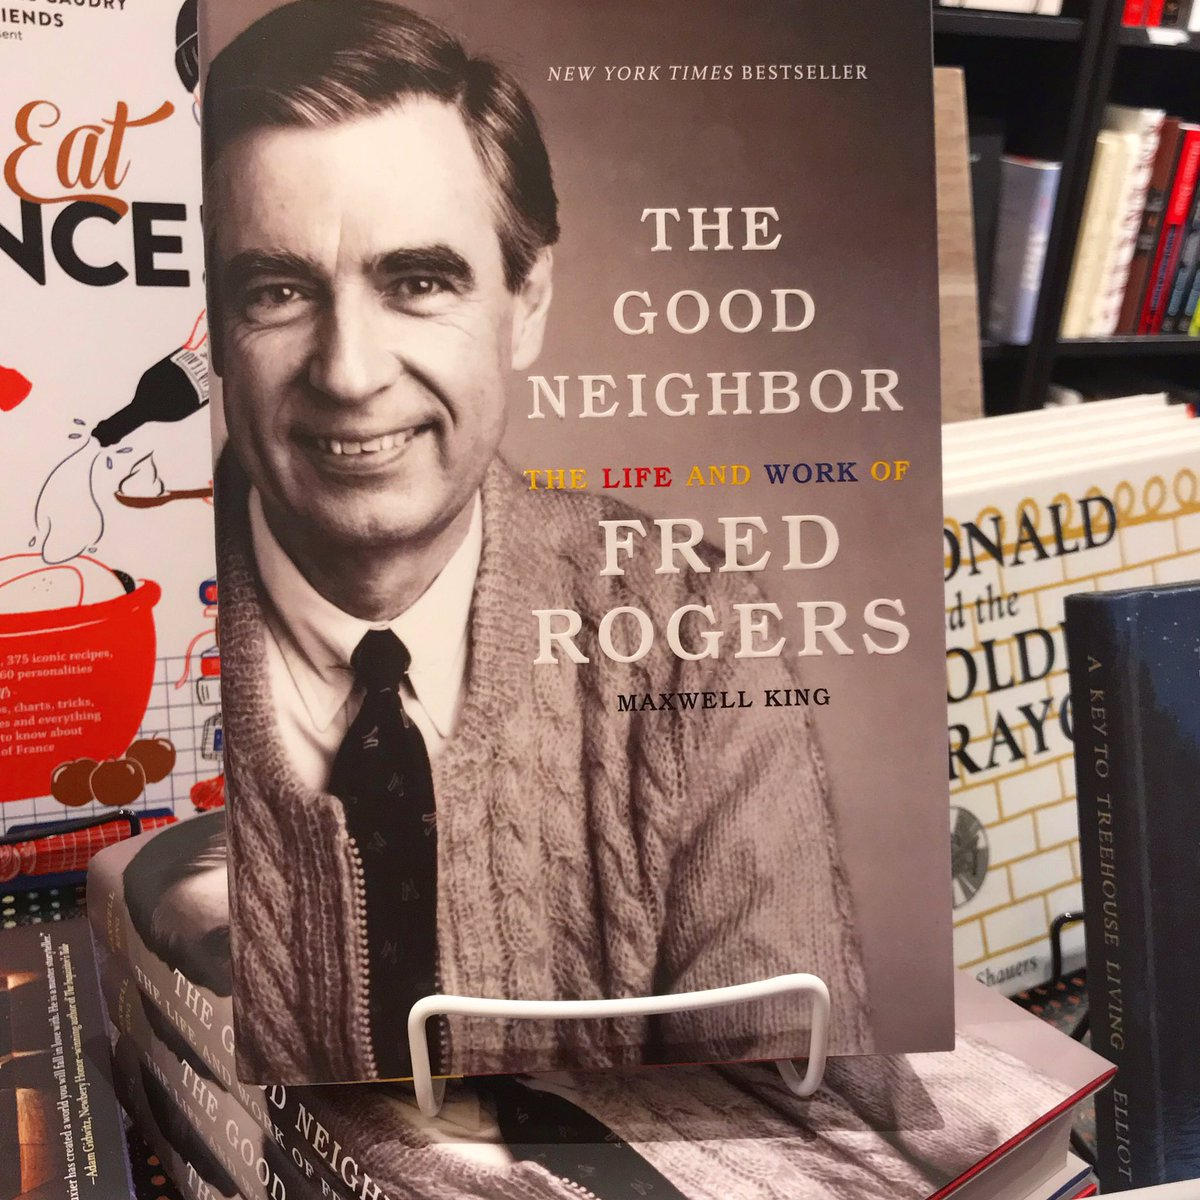 Classiclinesbooks On Twitter The Words And Life Of Mister Rogers Are Needed Now More Than Ever Don T Miss Maxwell King S Definitive Biography On Fred Rogers Back In Stock Now Fredrogers